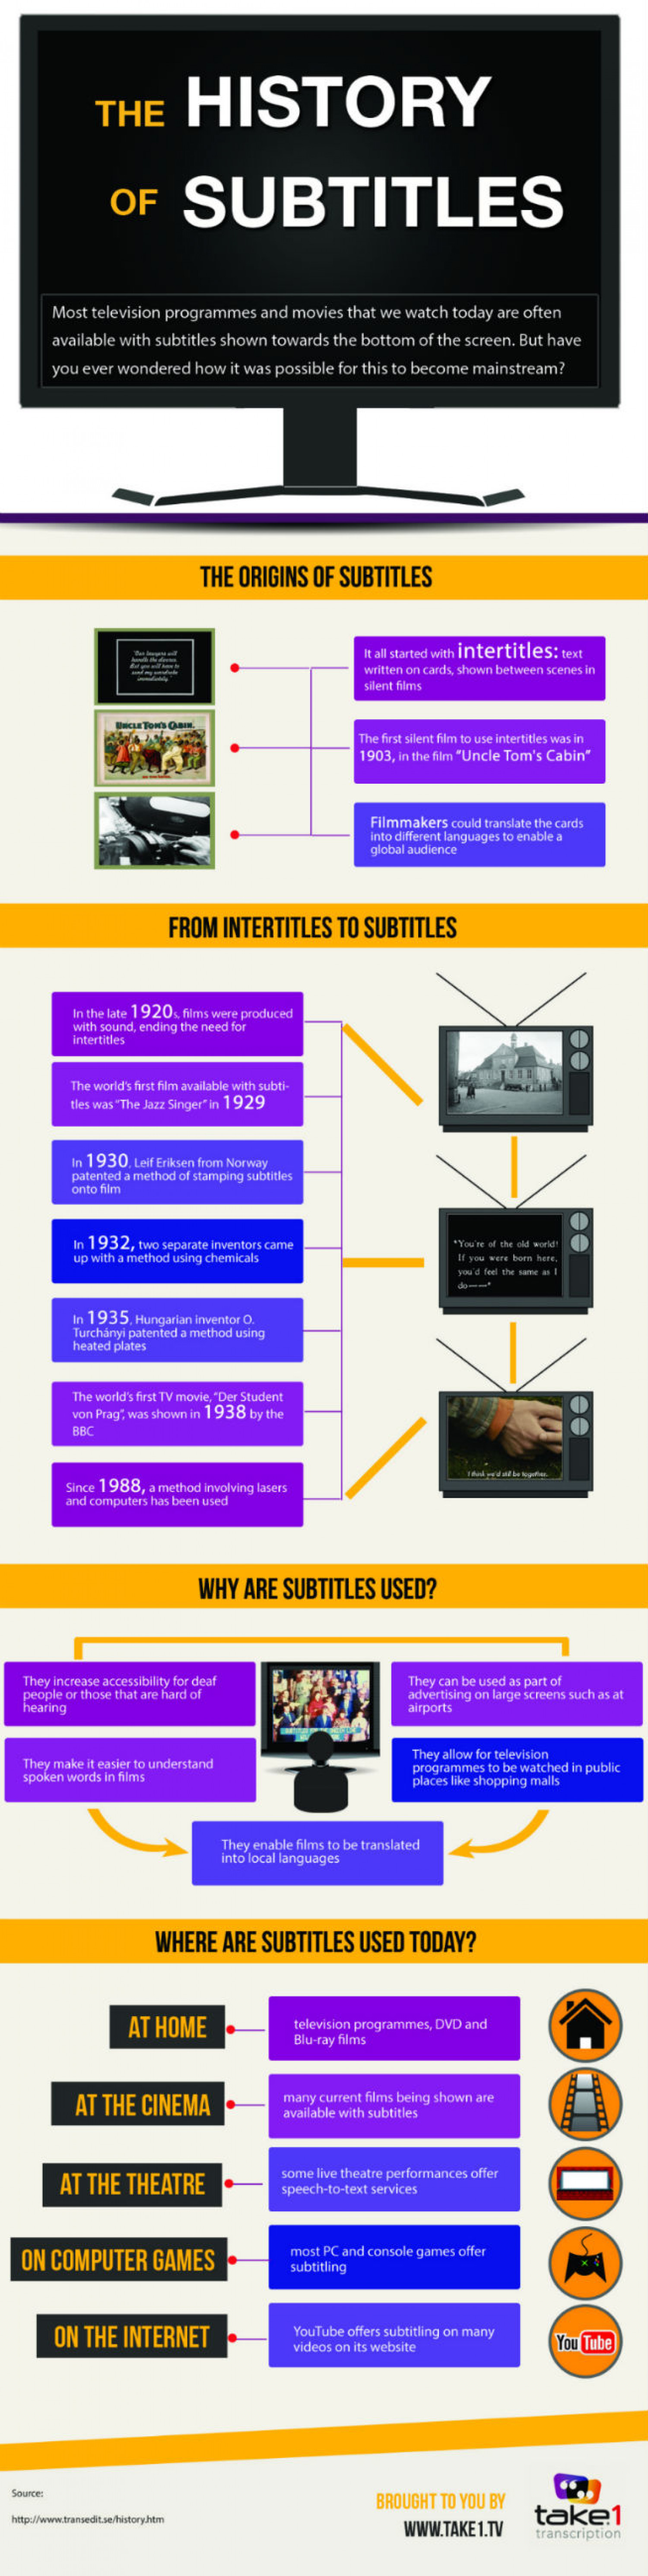 A History Of Subtitles Infographic